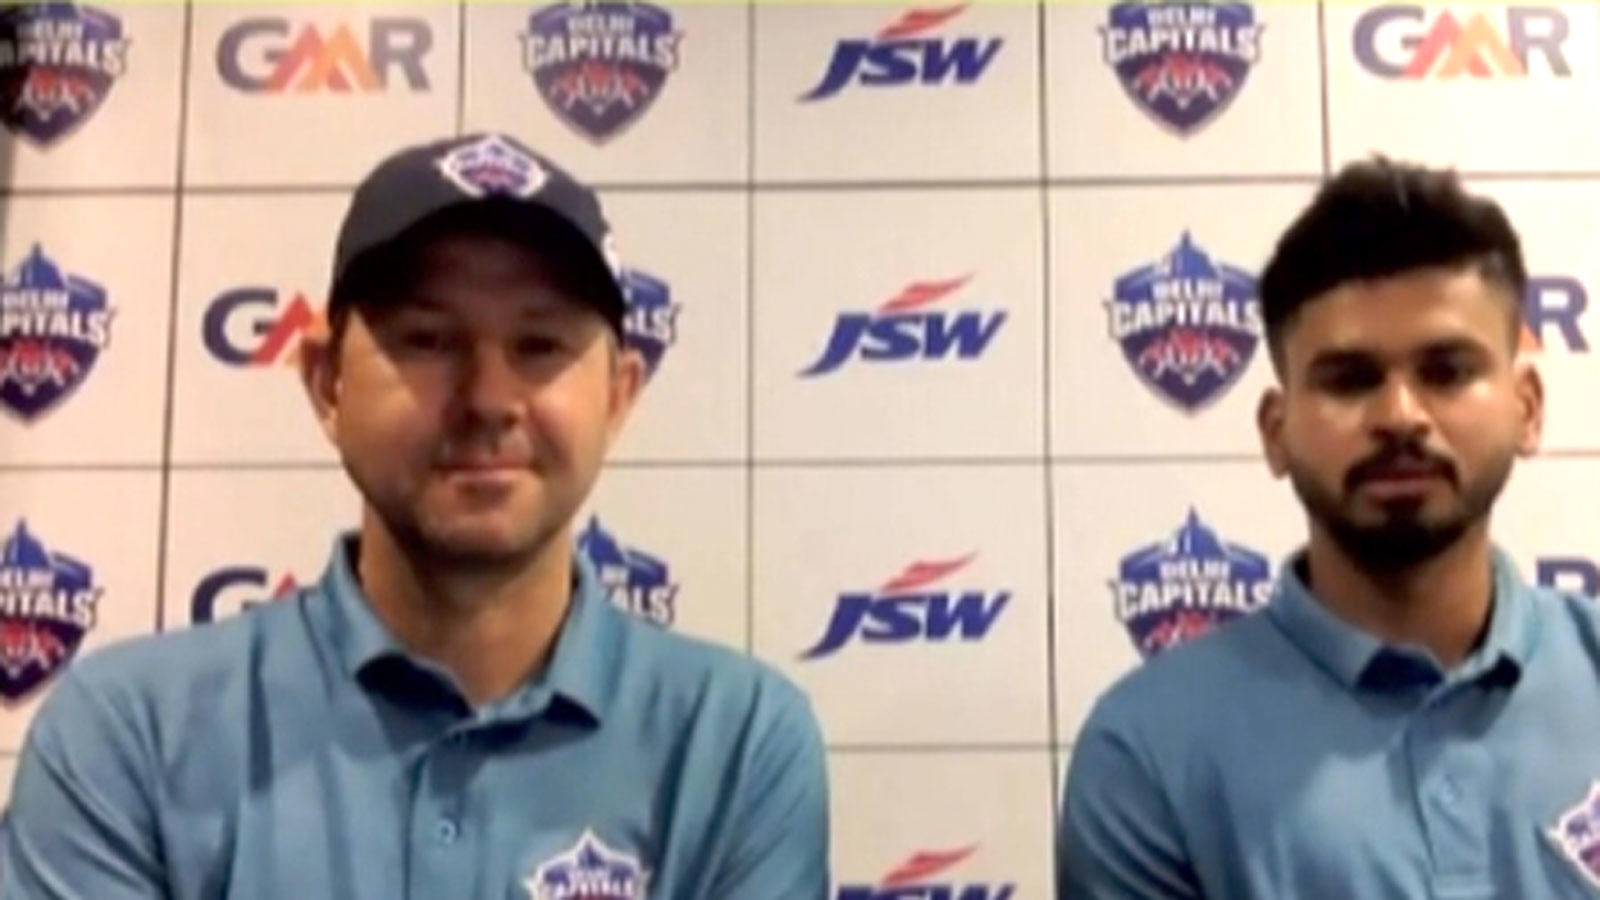 ipl-2020-delhi-capitals-preparations-changed-this-season-due-to-covid-says-head-coach